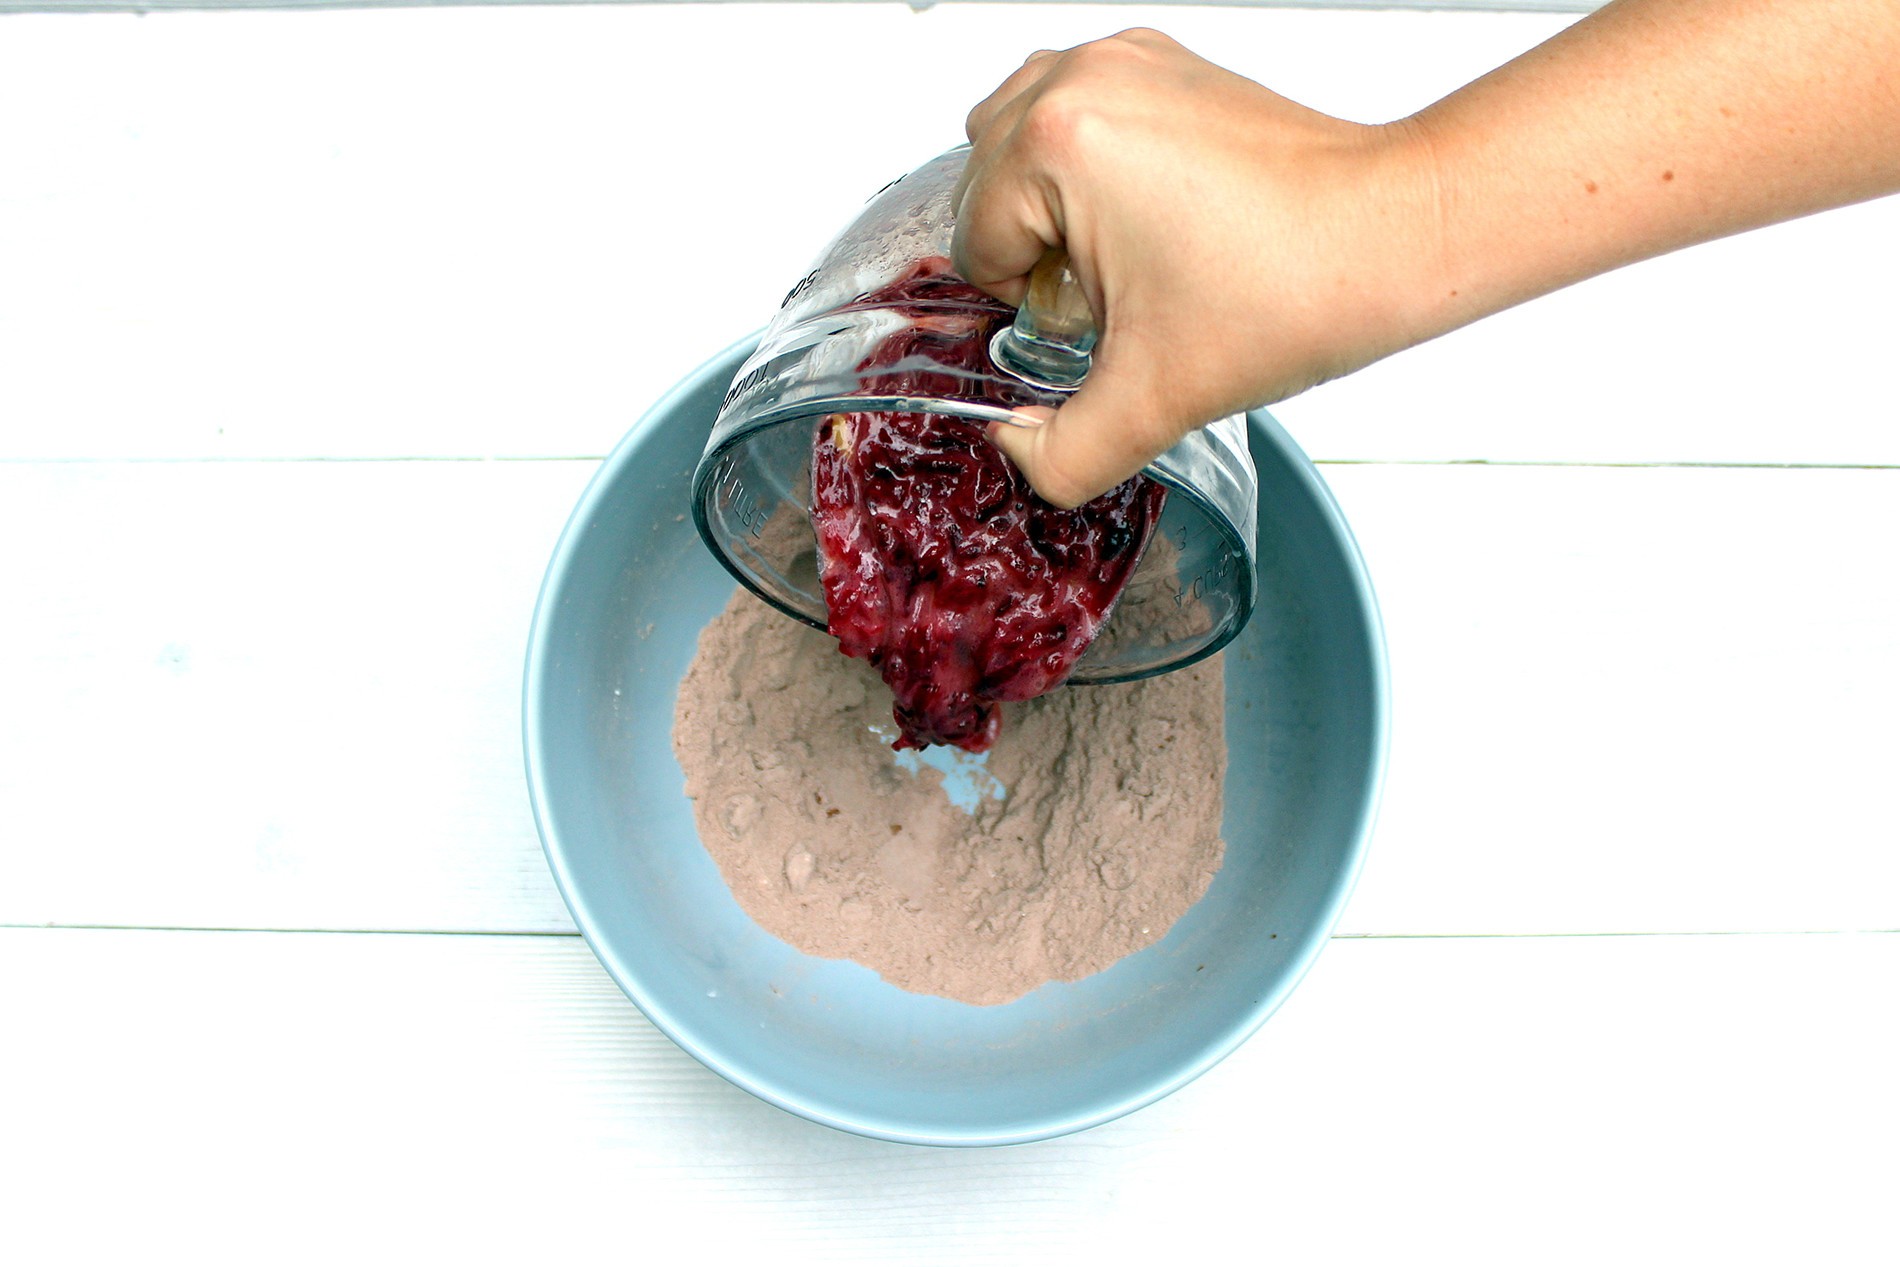 Pour the wet ingredients into the dry